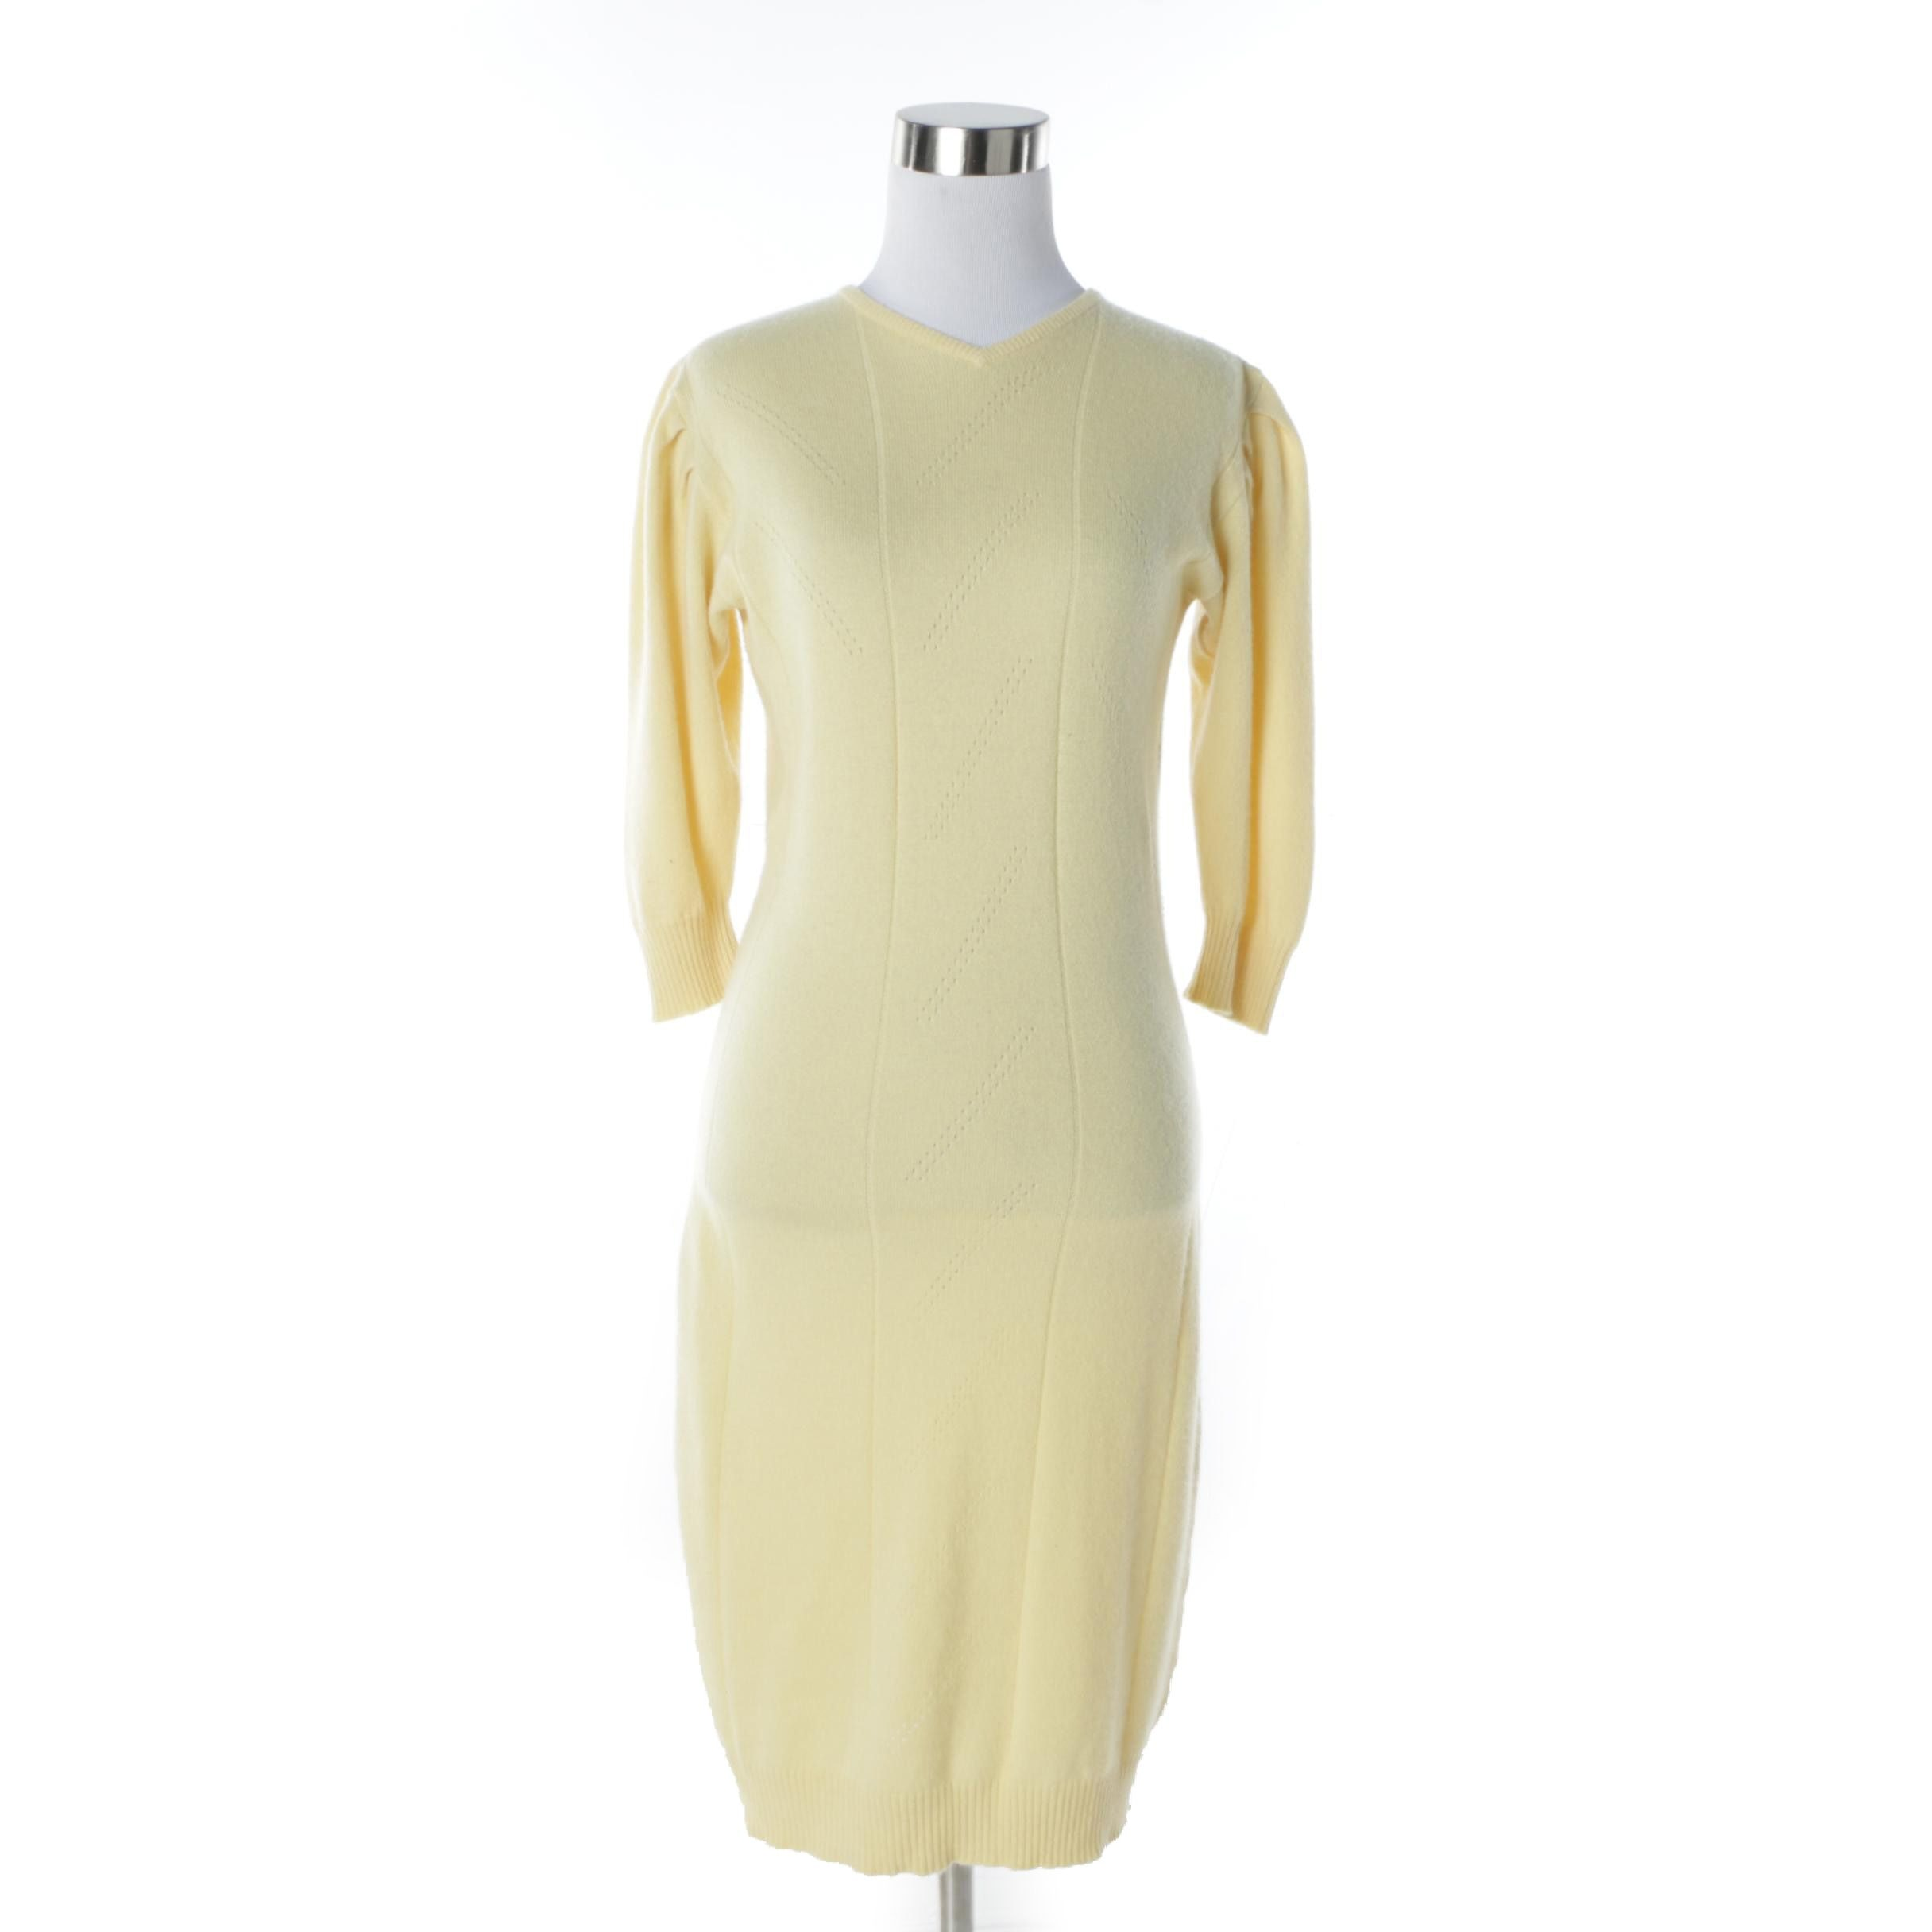 1980s Vintage Jean Muir Pure Scottish Cashmere Sweater Dress in Jasmine Yellow